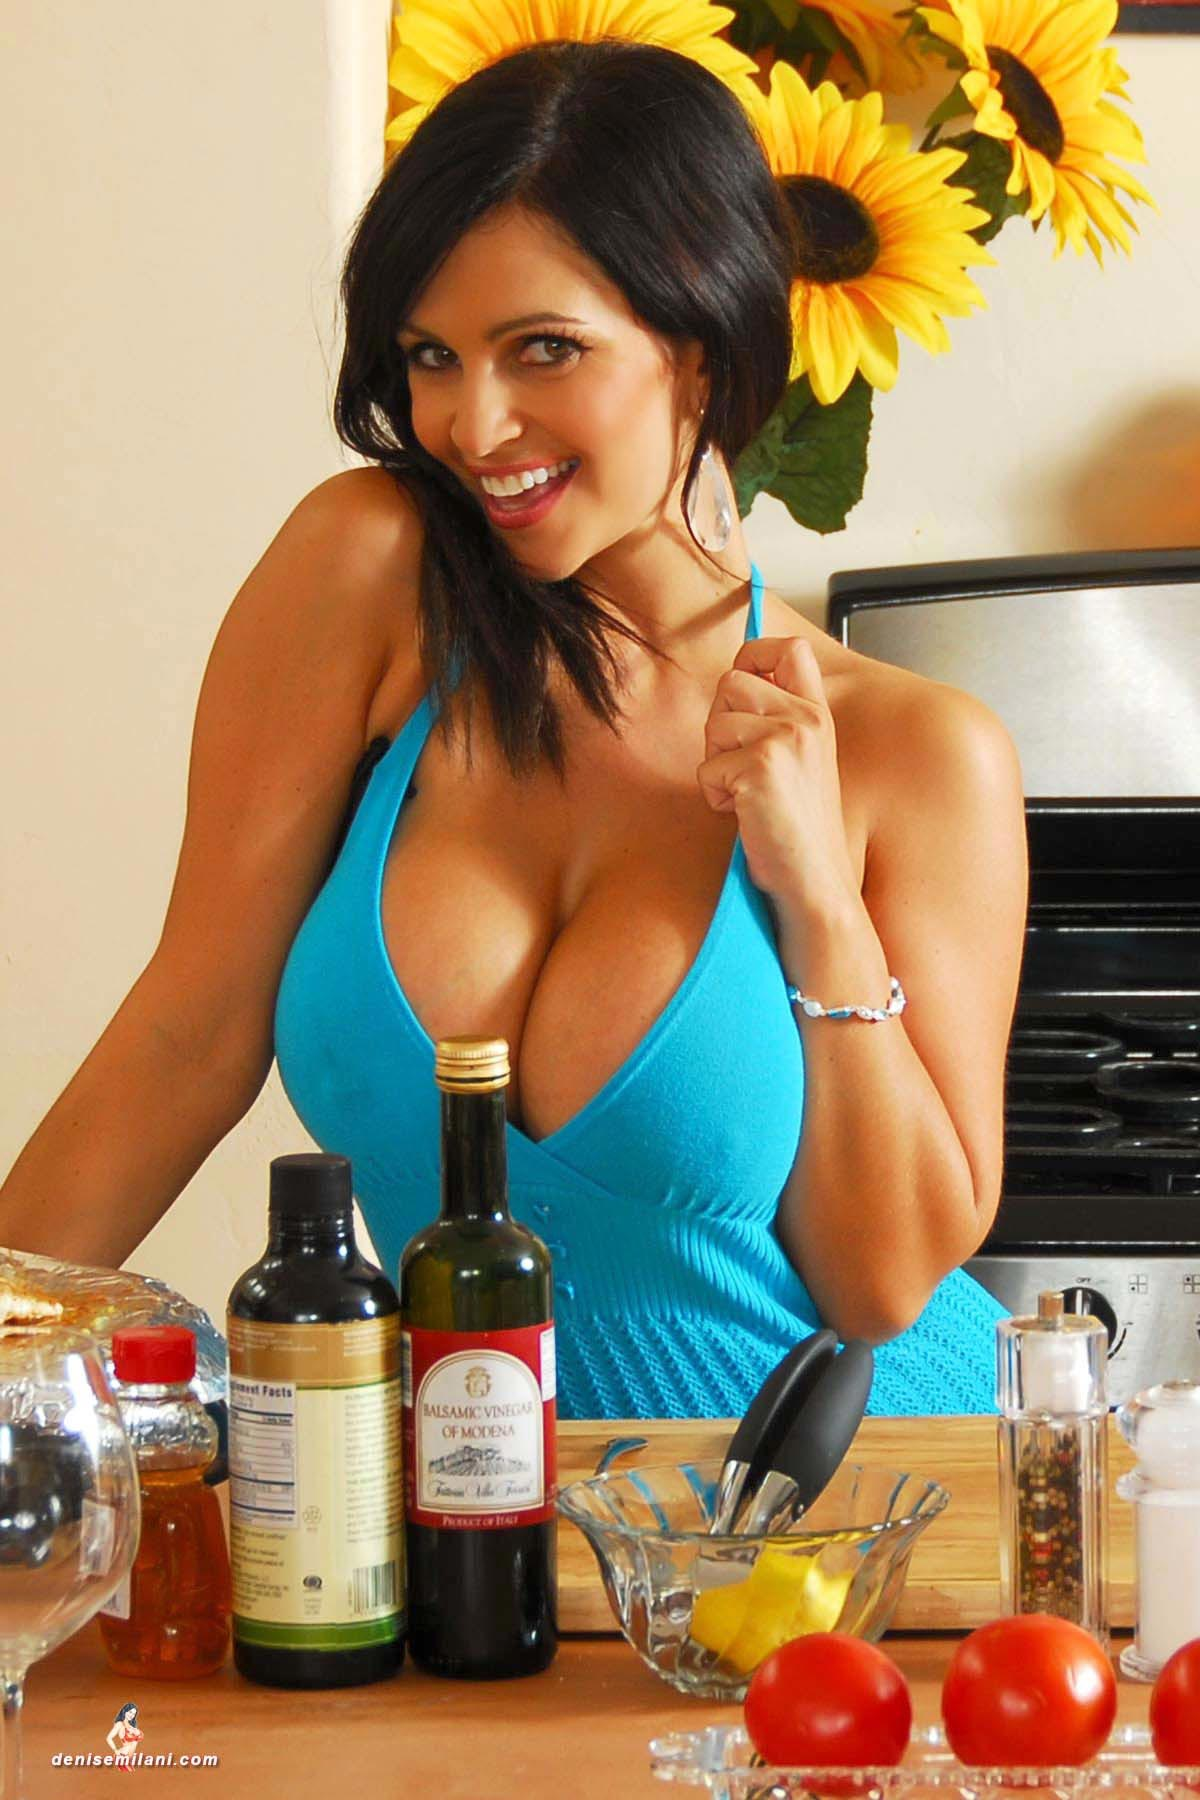 denise-milani-cooking-in-the-kitchen006